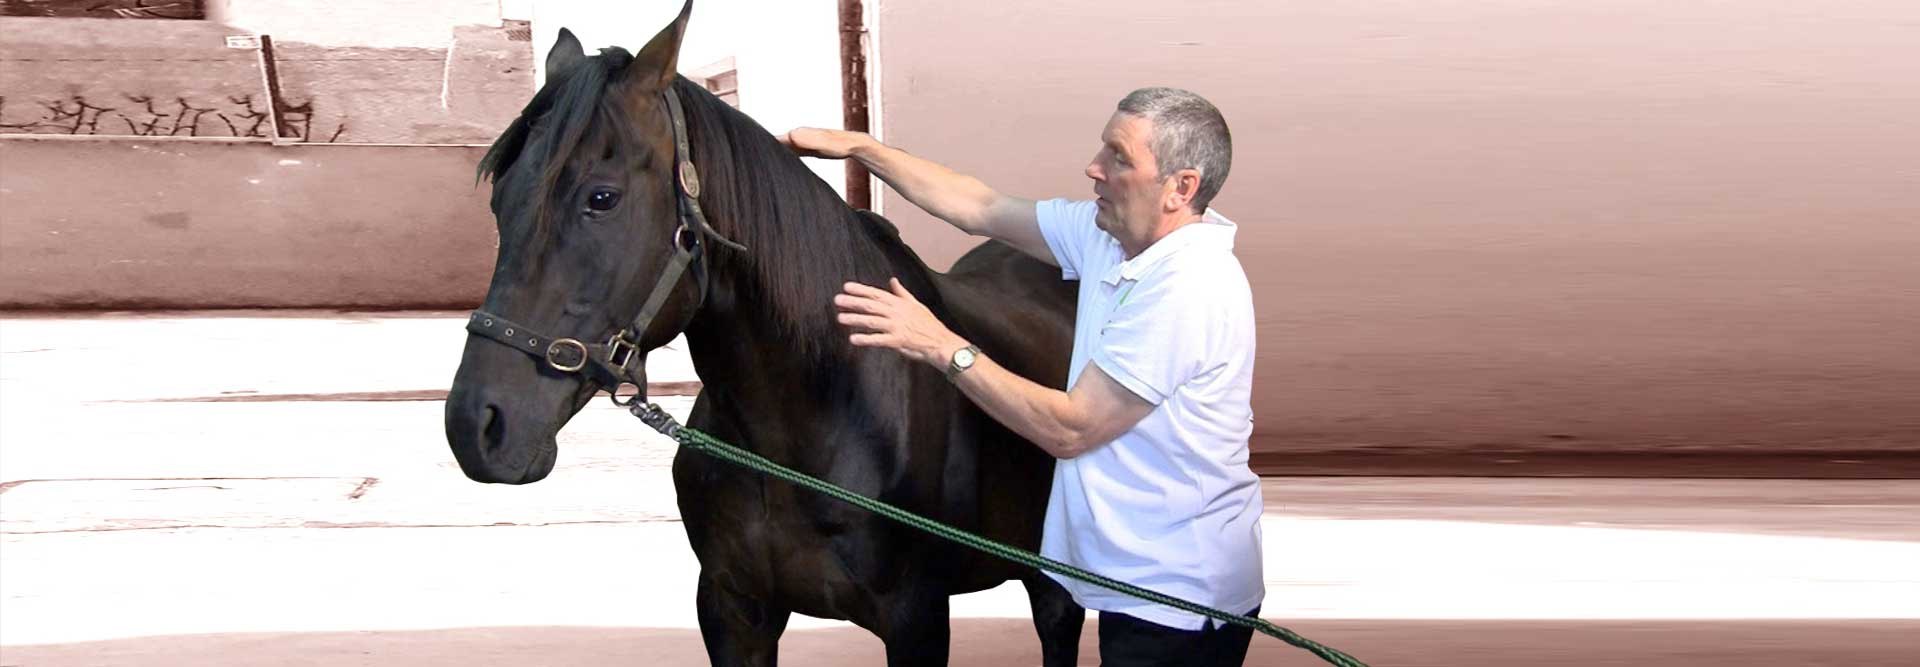 How animal energy healing helped  to heal an injured horse